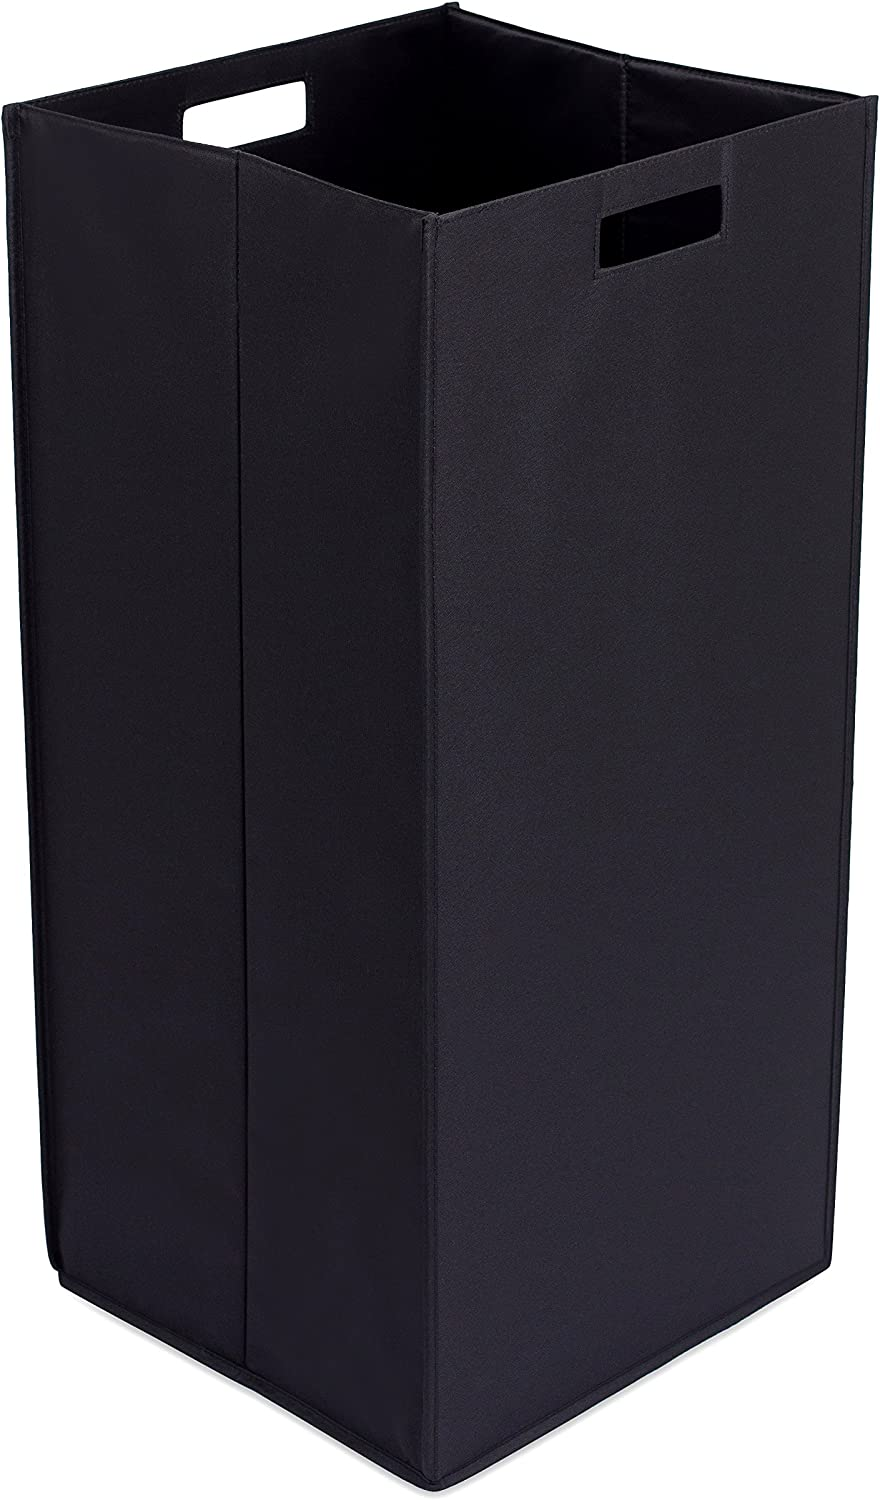 Internet's Best Collapsible Laundry Hamper - Dirty Clothes Sorter with Handles - Easy Storage - Magnetic Side - Folding - Black